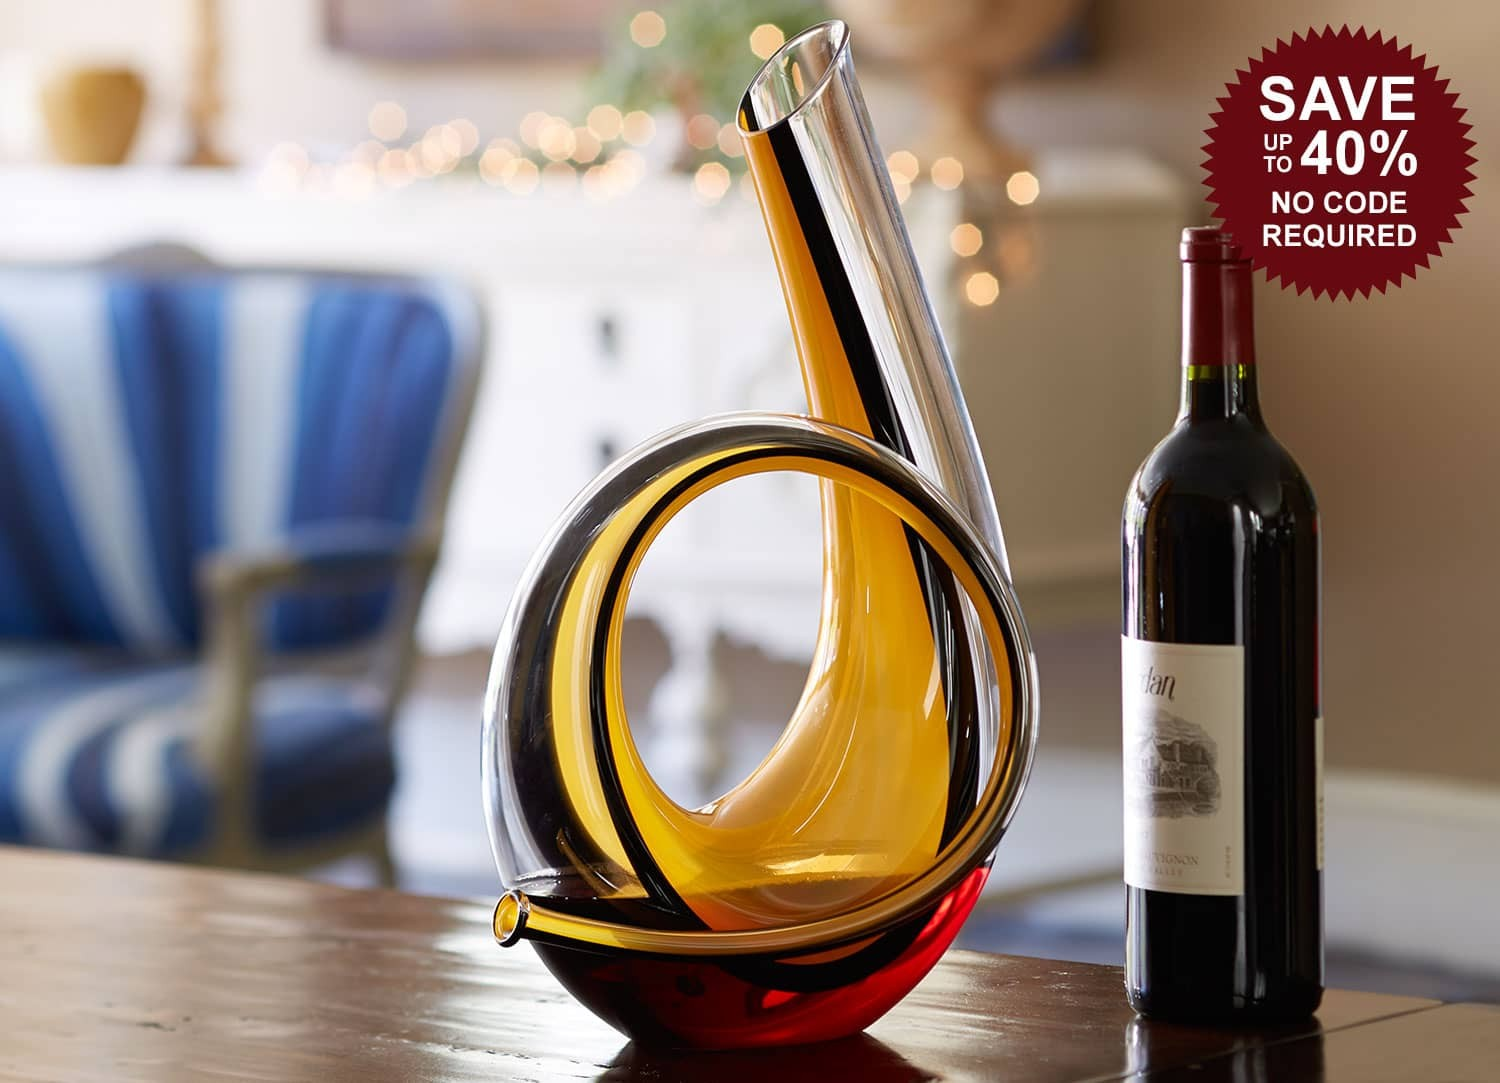 Select Riedel Glassware - 20% Off - No Code Required